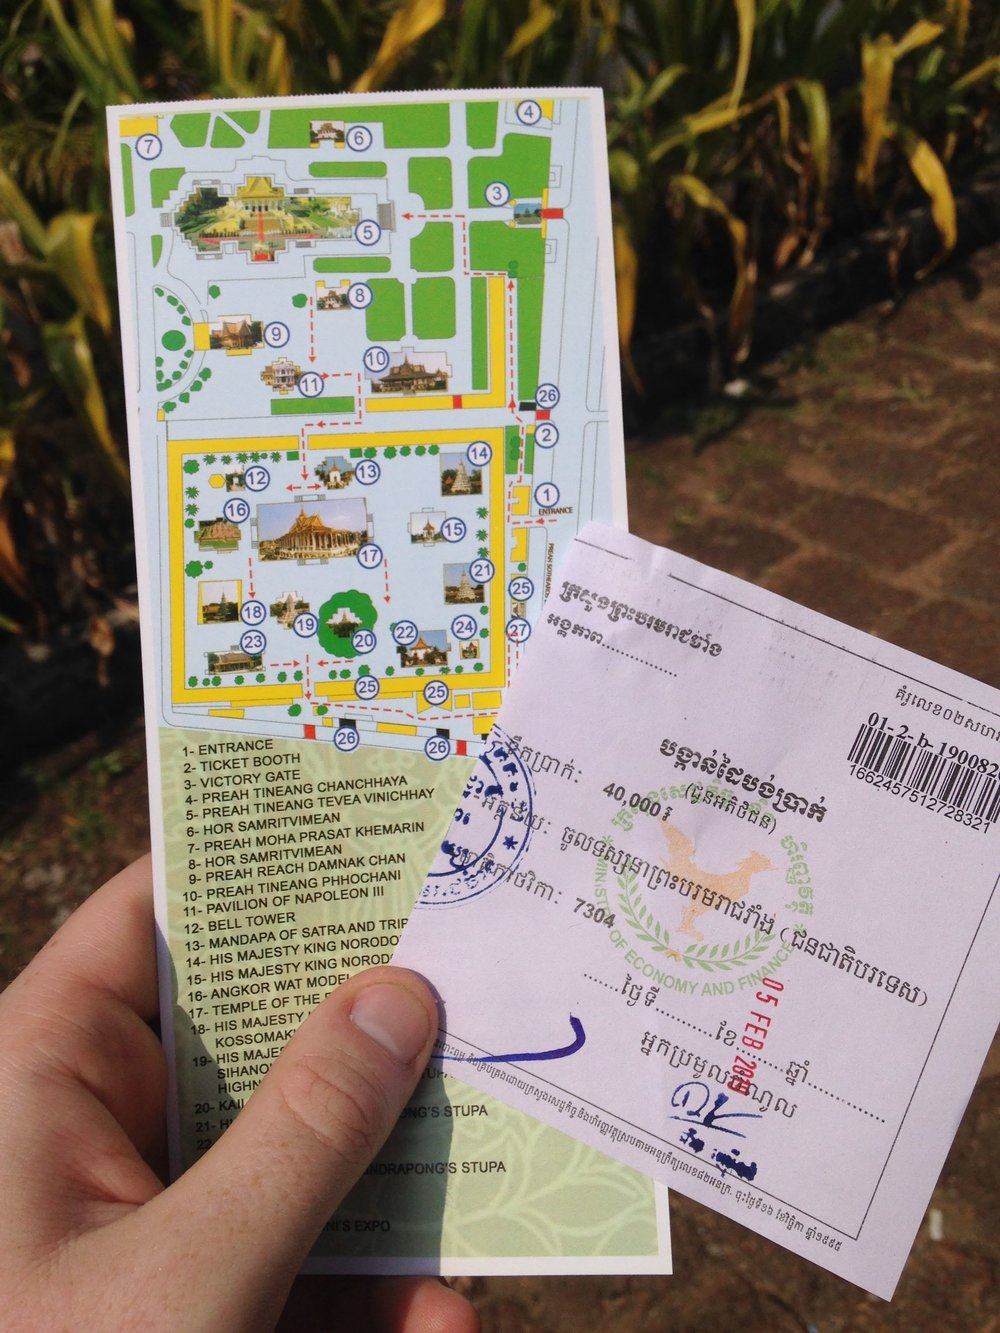 An entry ticket (40,000 khr or $10) to the Royal Palace and a map of the palace grounds.